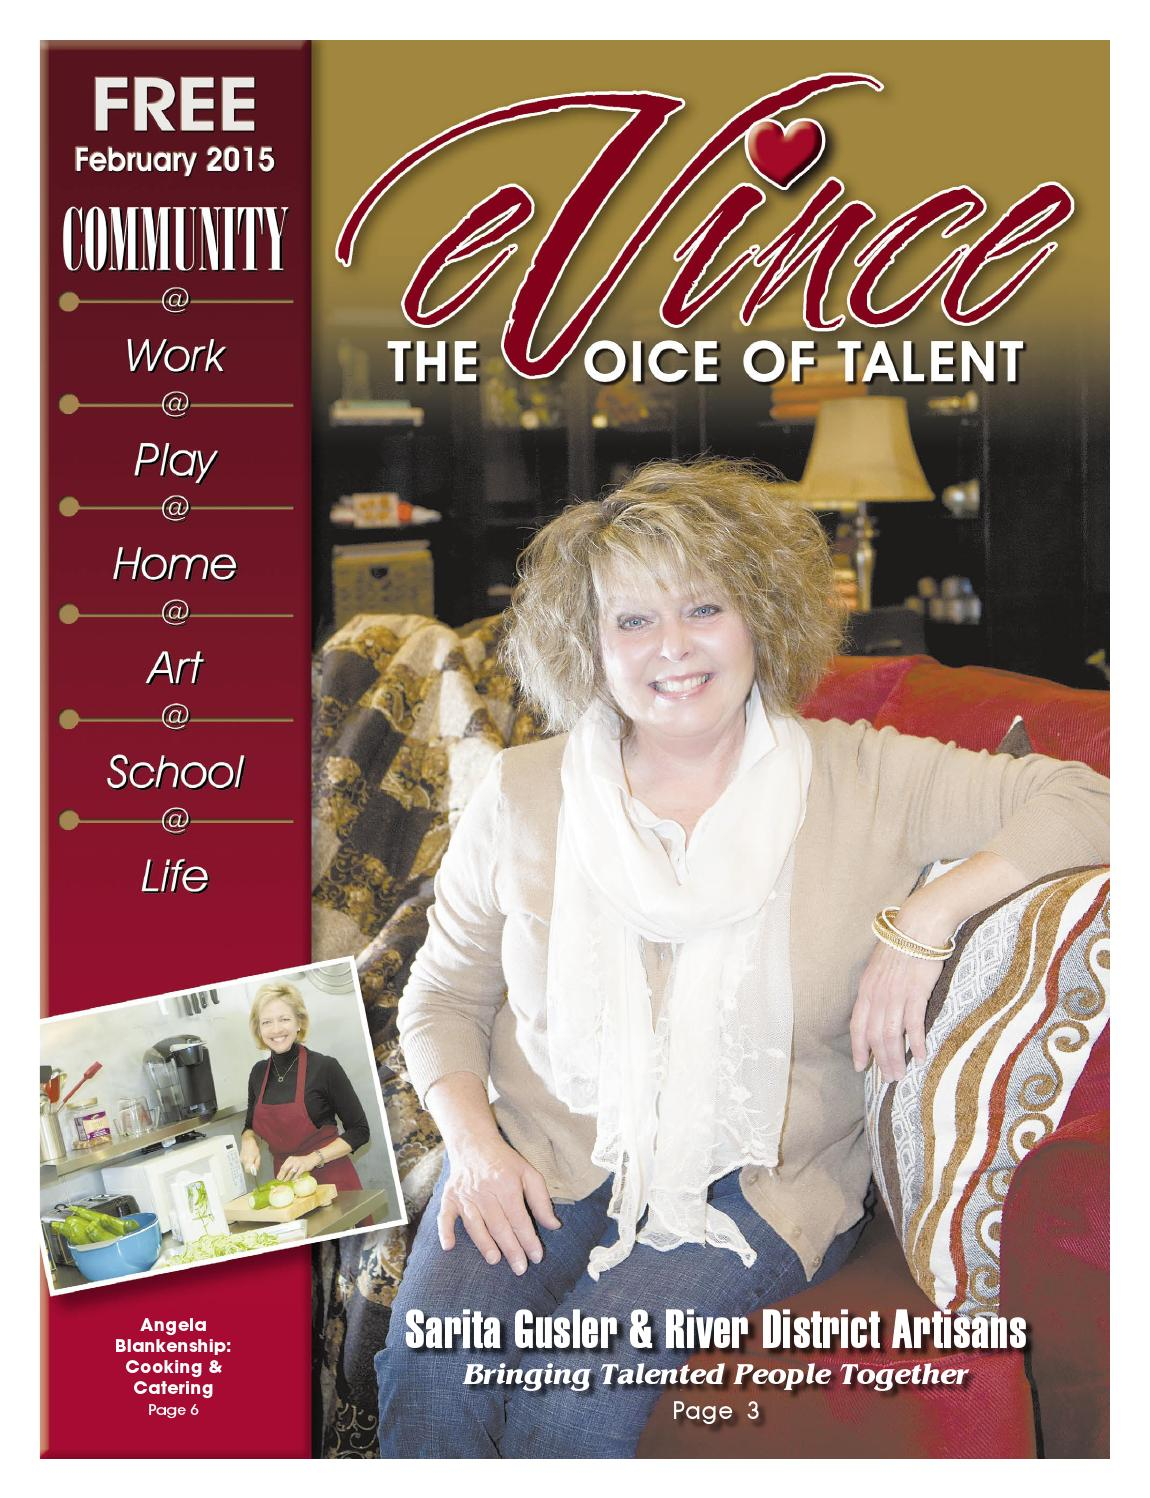 Evince215 4web by Andrew Brooks Media Group - Issuu